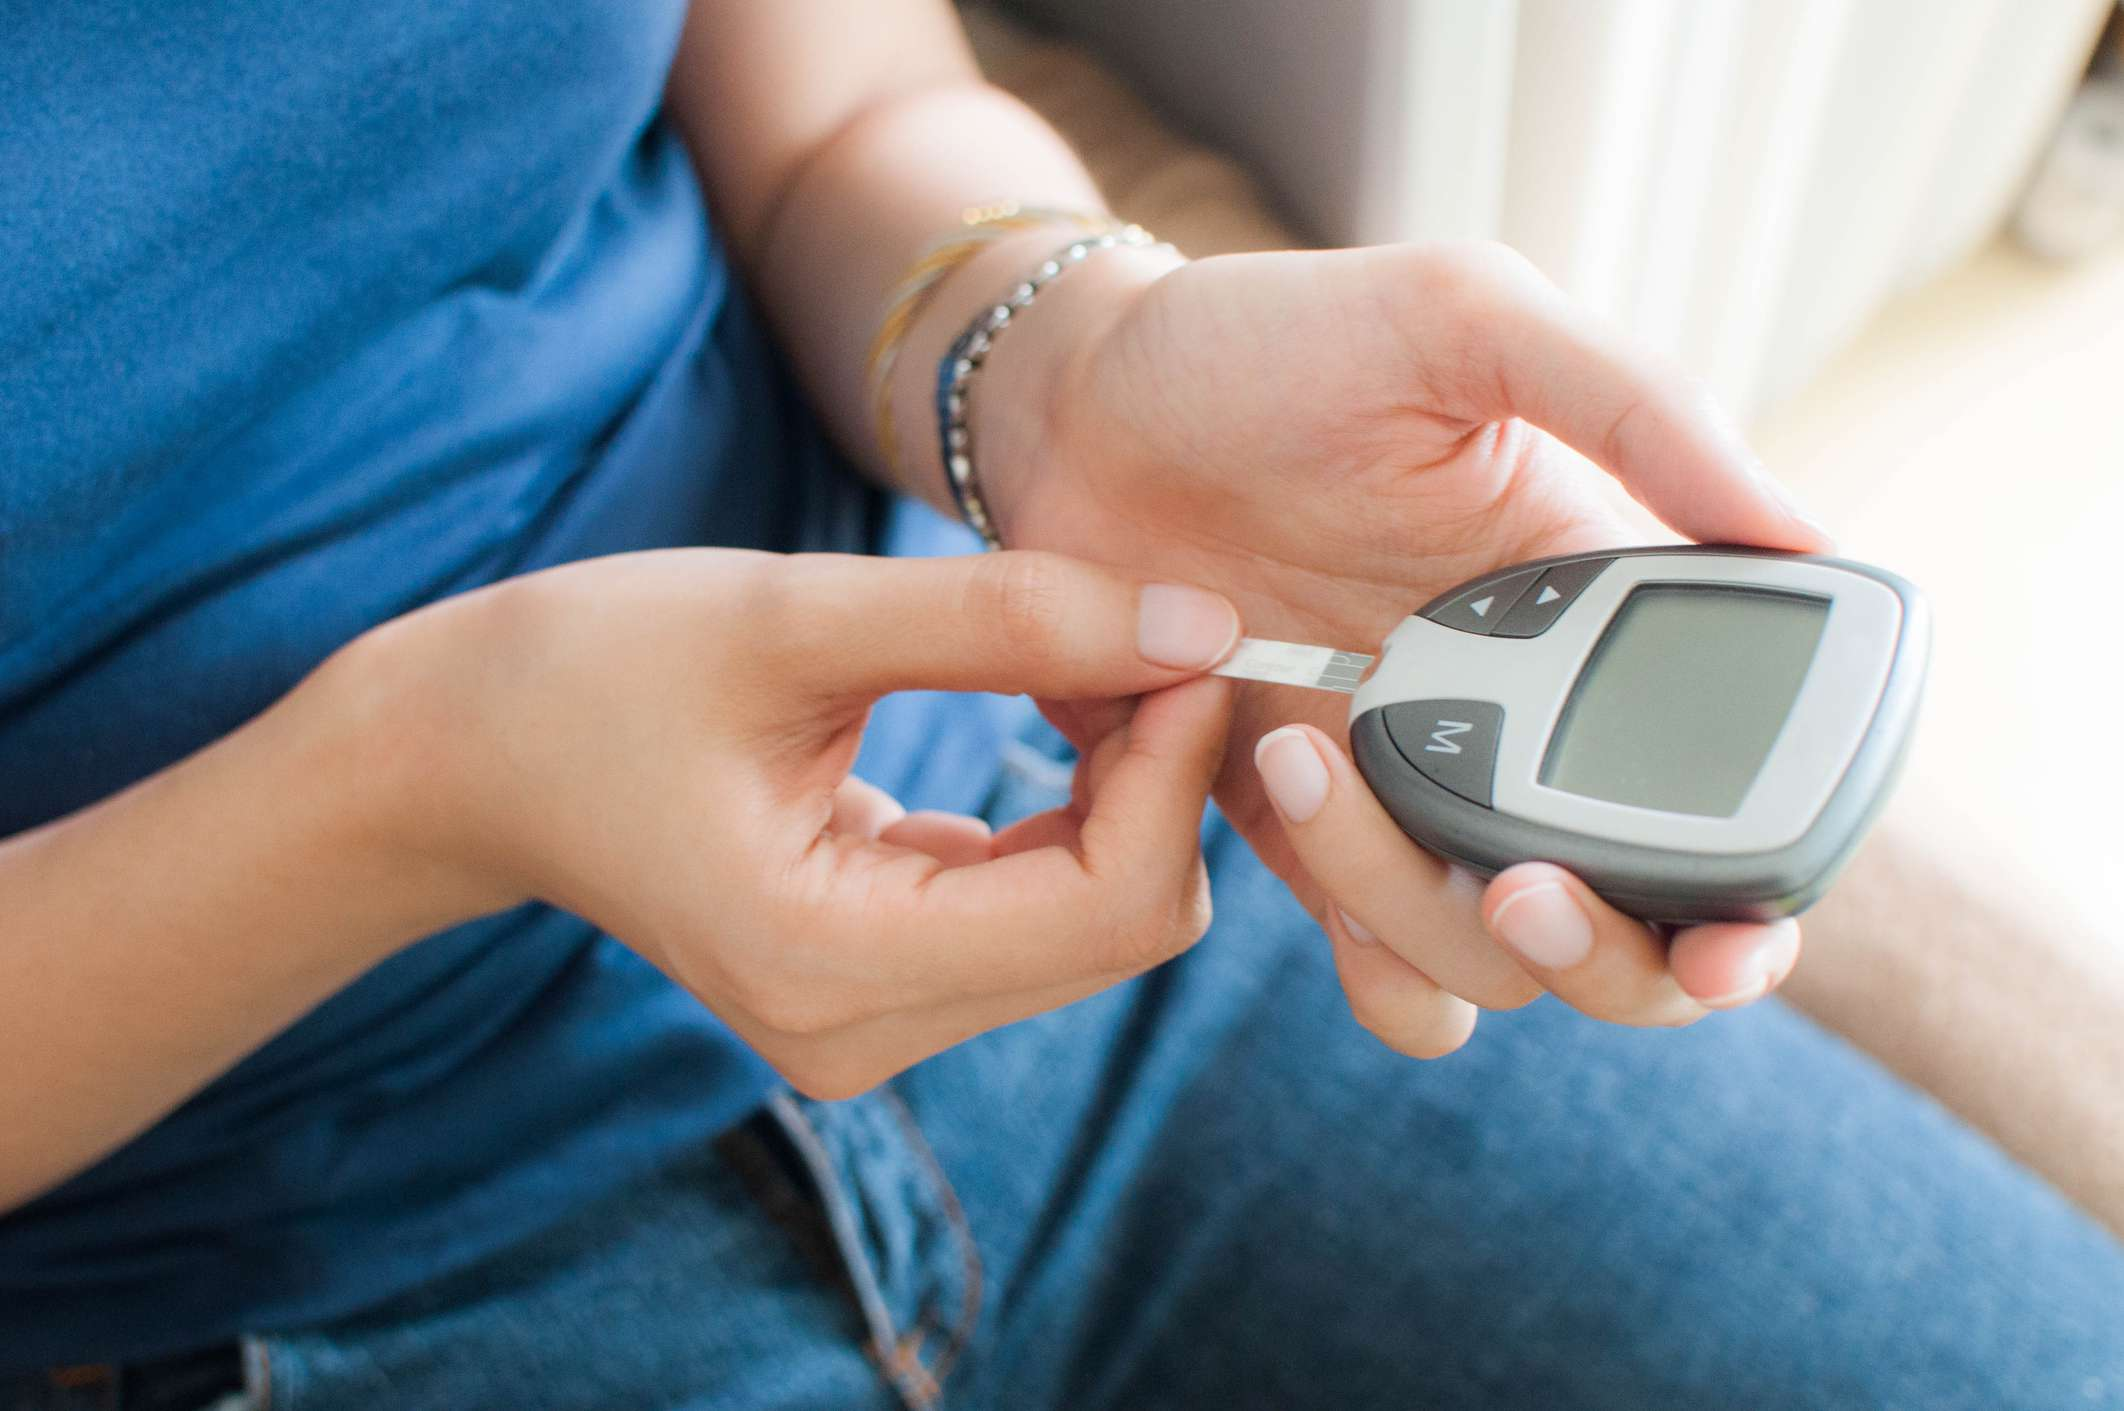 A young woman using a glucose meter